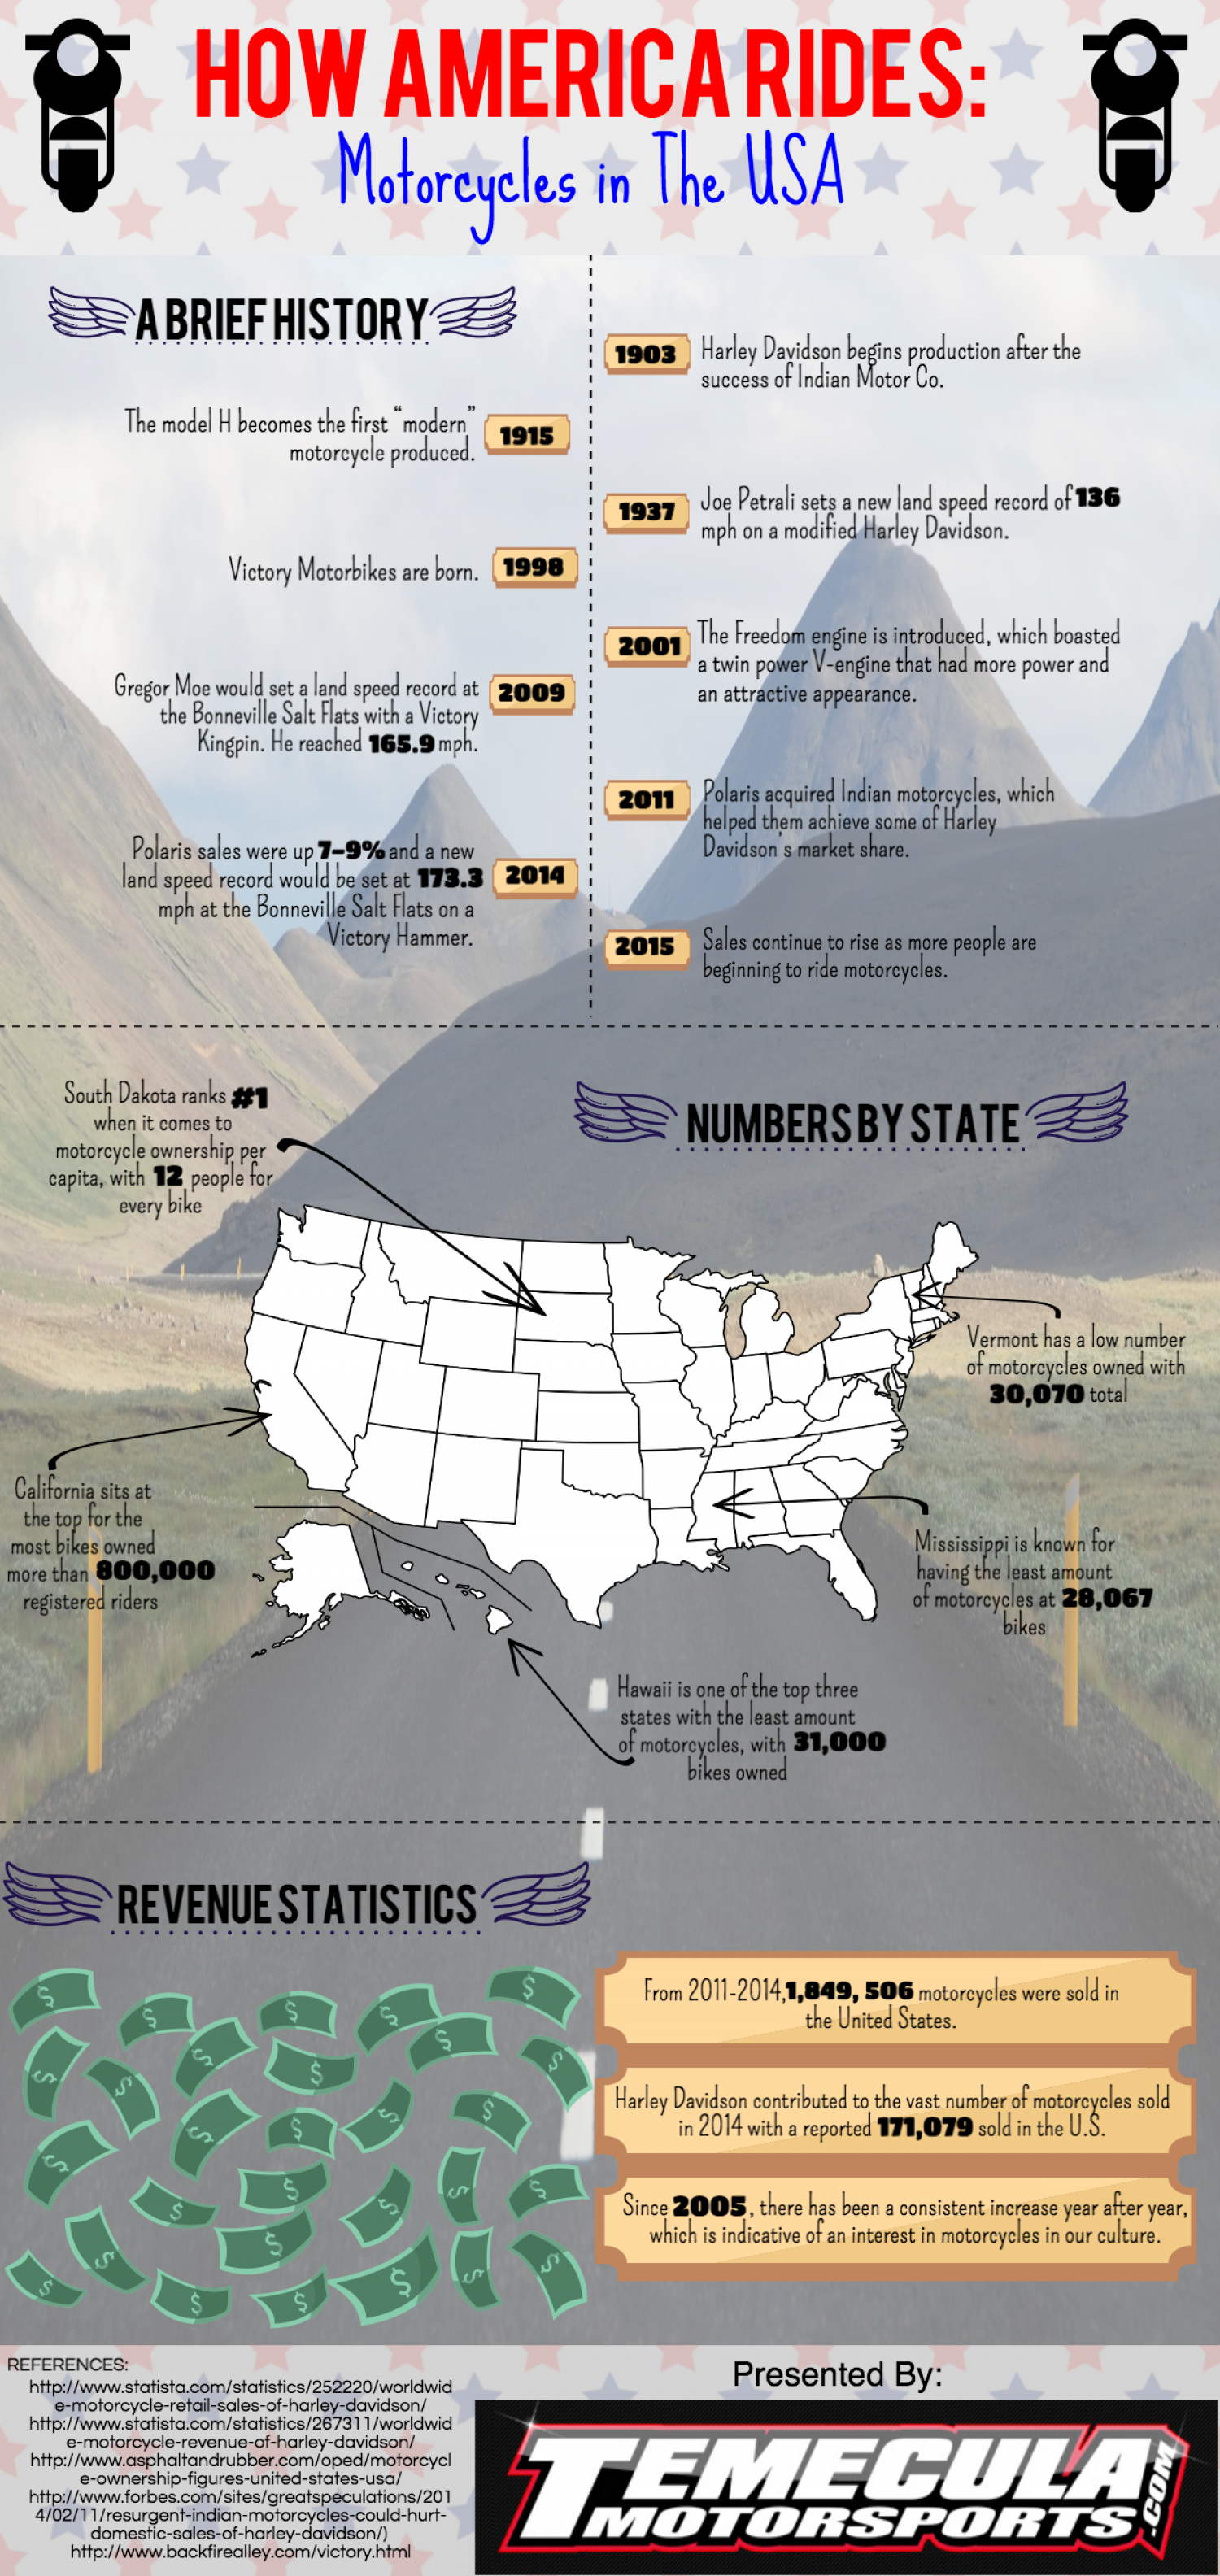 How America Rides: Motorcycles in the USA Infographic